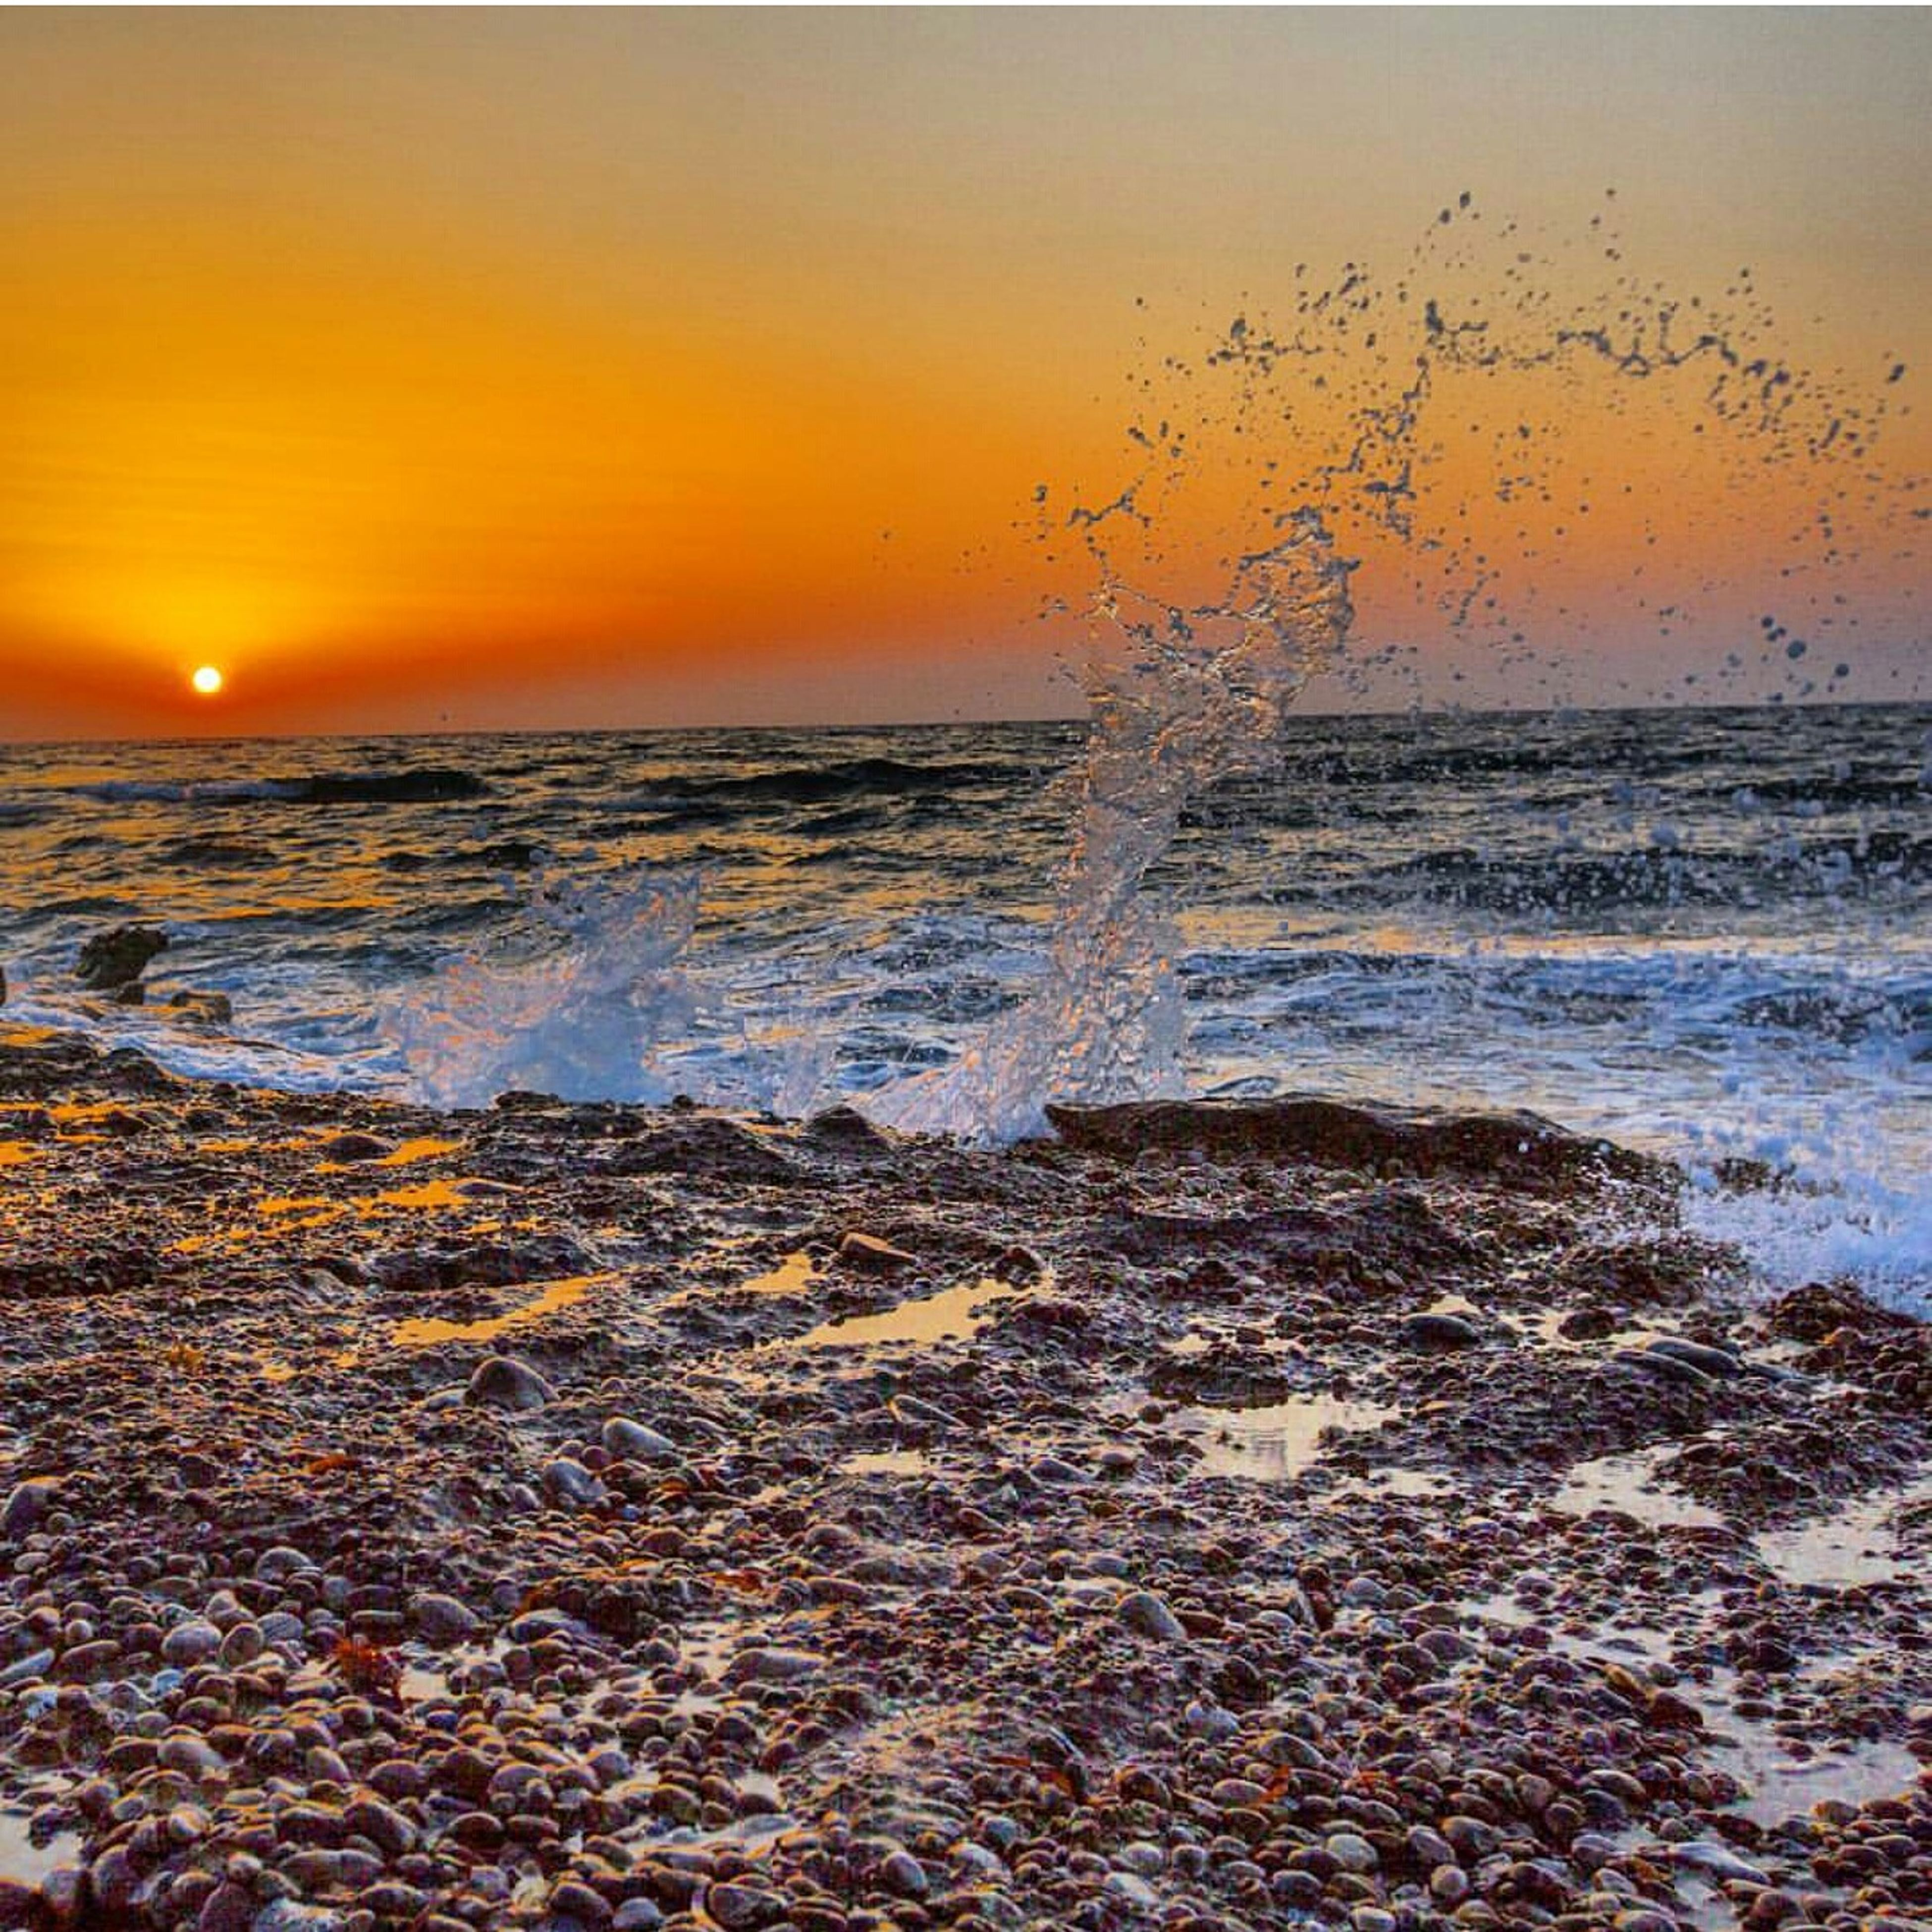 sunset, sea, motion, water, wave, horizon over water, splashing, orange color, sun, scenics, power in nature, beach, nature, beauty in nature, surf, non-urban scene, sky, majestic, shore, waterfront, outdoors, vacations, tranquility, seascape, atmospheric mood, tranquil scene